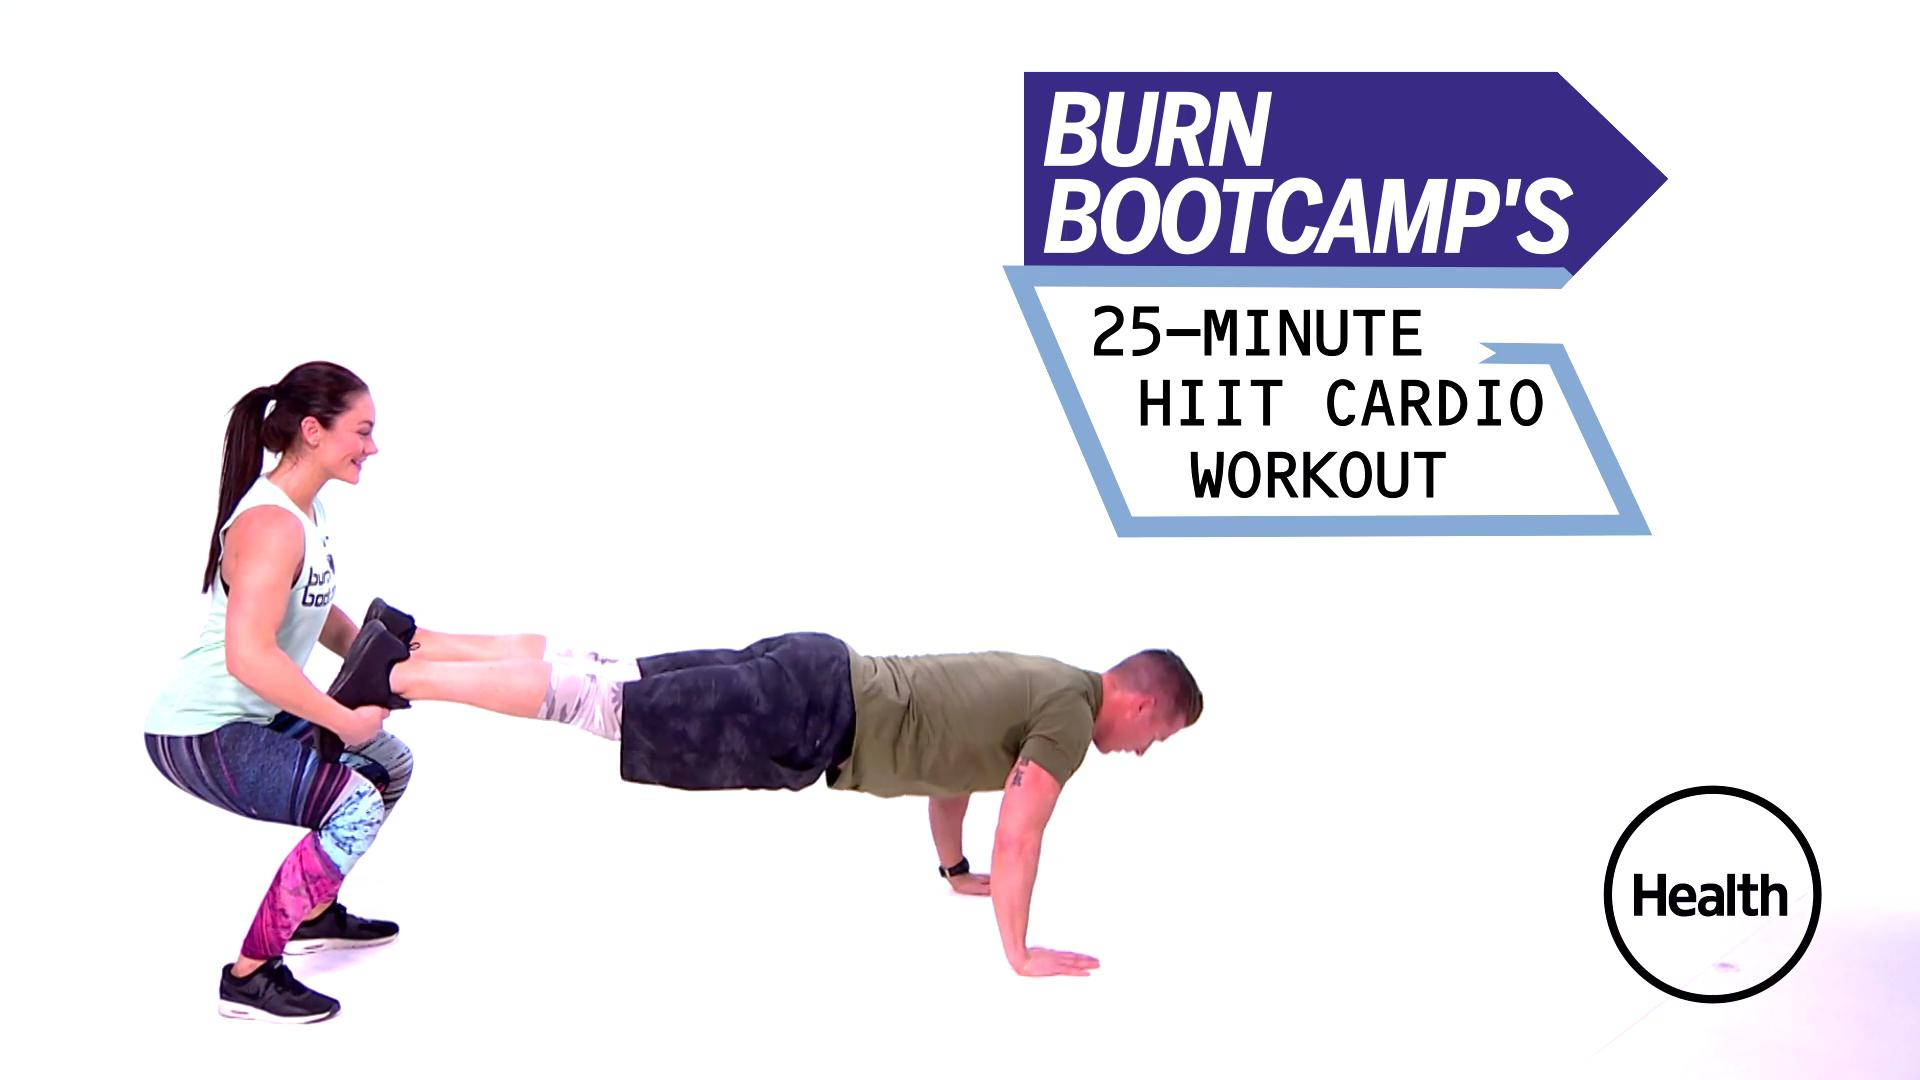 All You Need Is a Mat and 25 Minutes to Complete This Total Body Boot Camp Workout